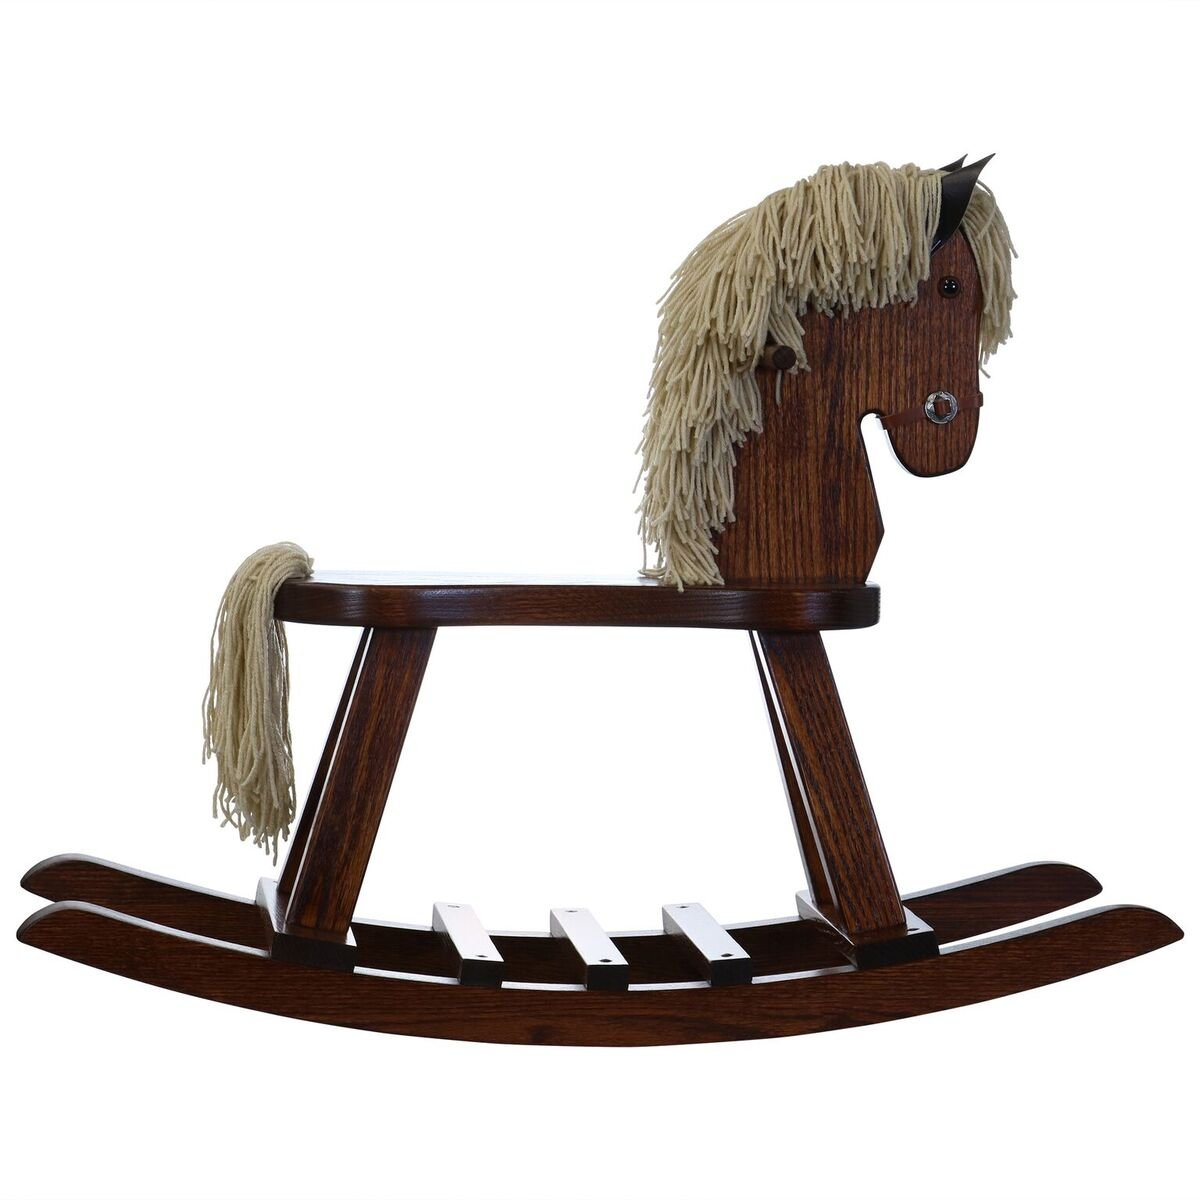 Amish Made Wooden Rocking horse for toddlers and kids Nursery Room decor decoration Hand Crafted in the USA Made of solid oak Size: 34'' W x 11.5 ''D x . by DaySpring Internati